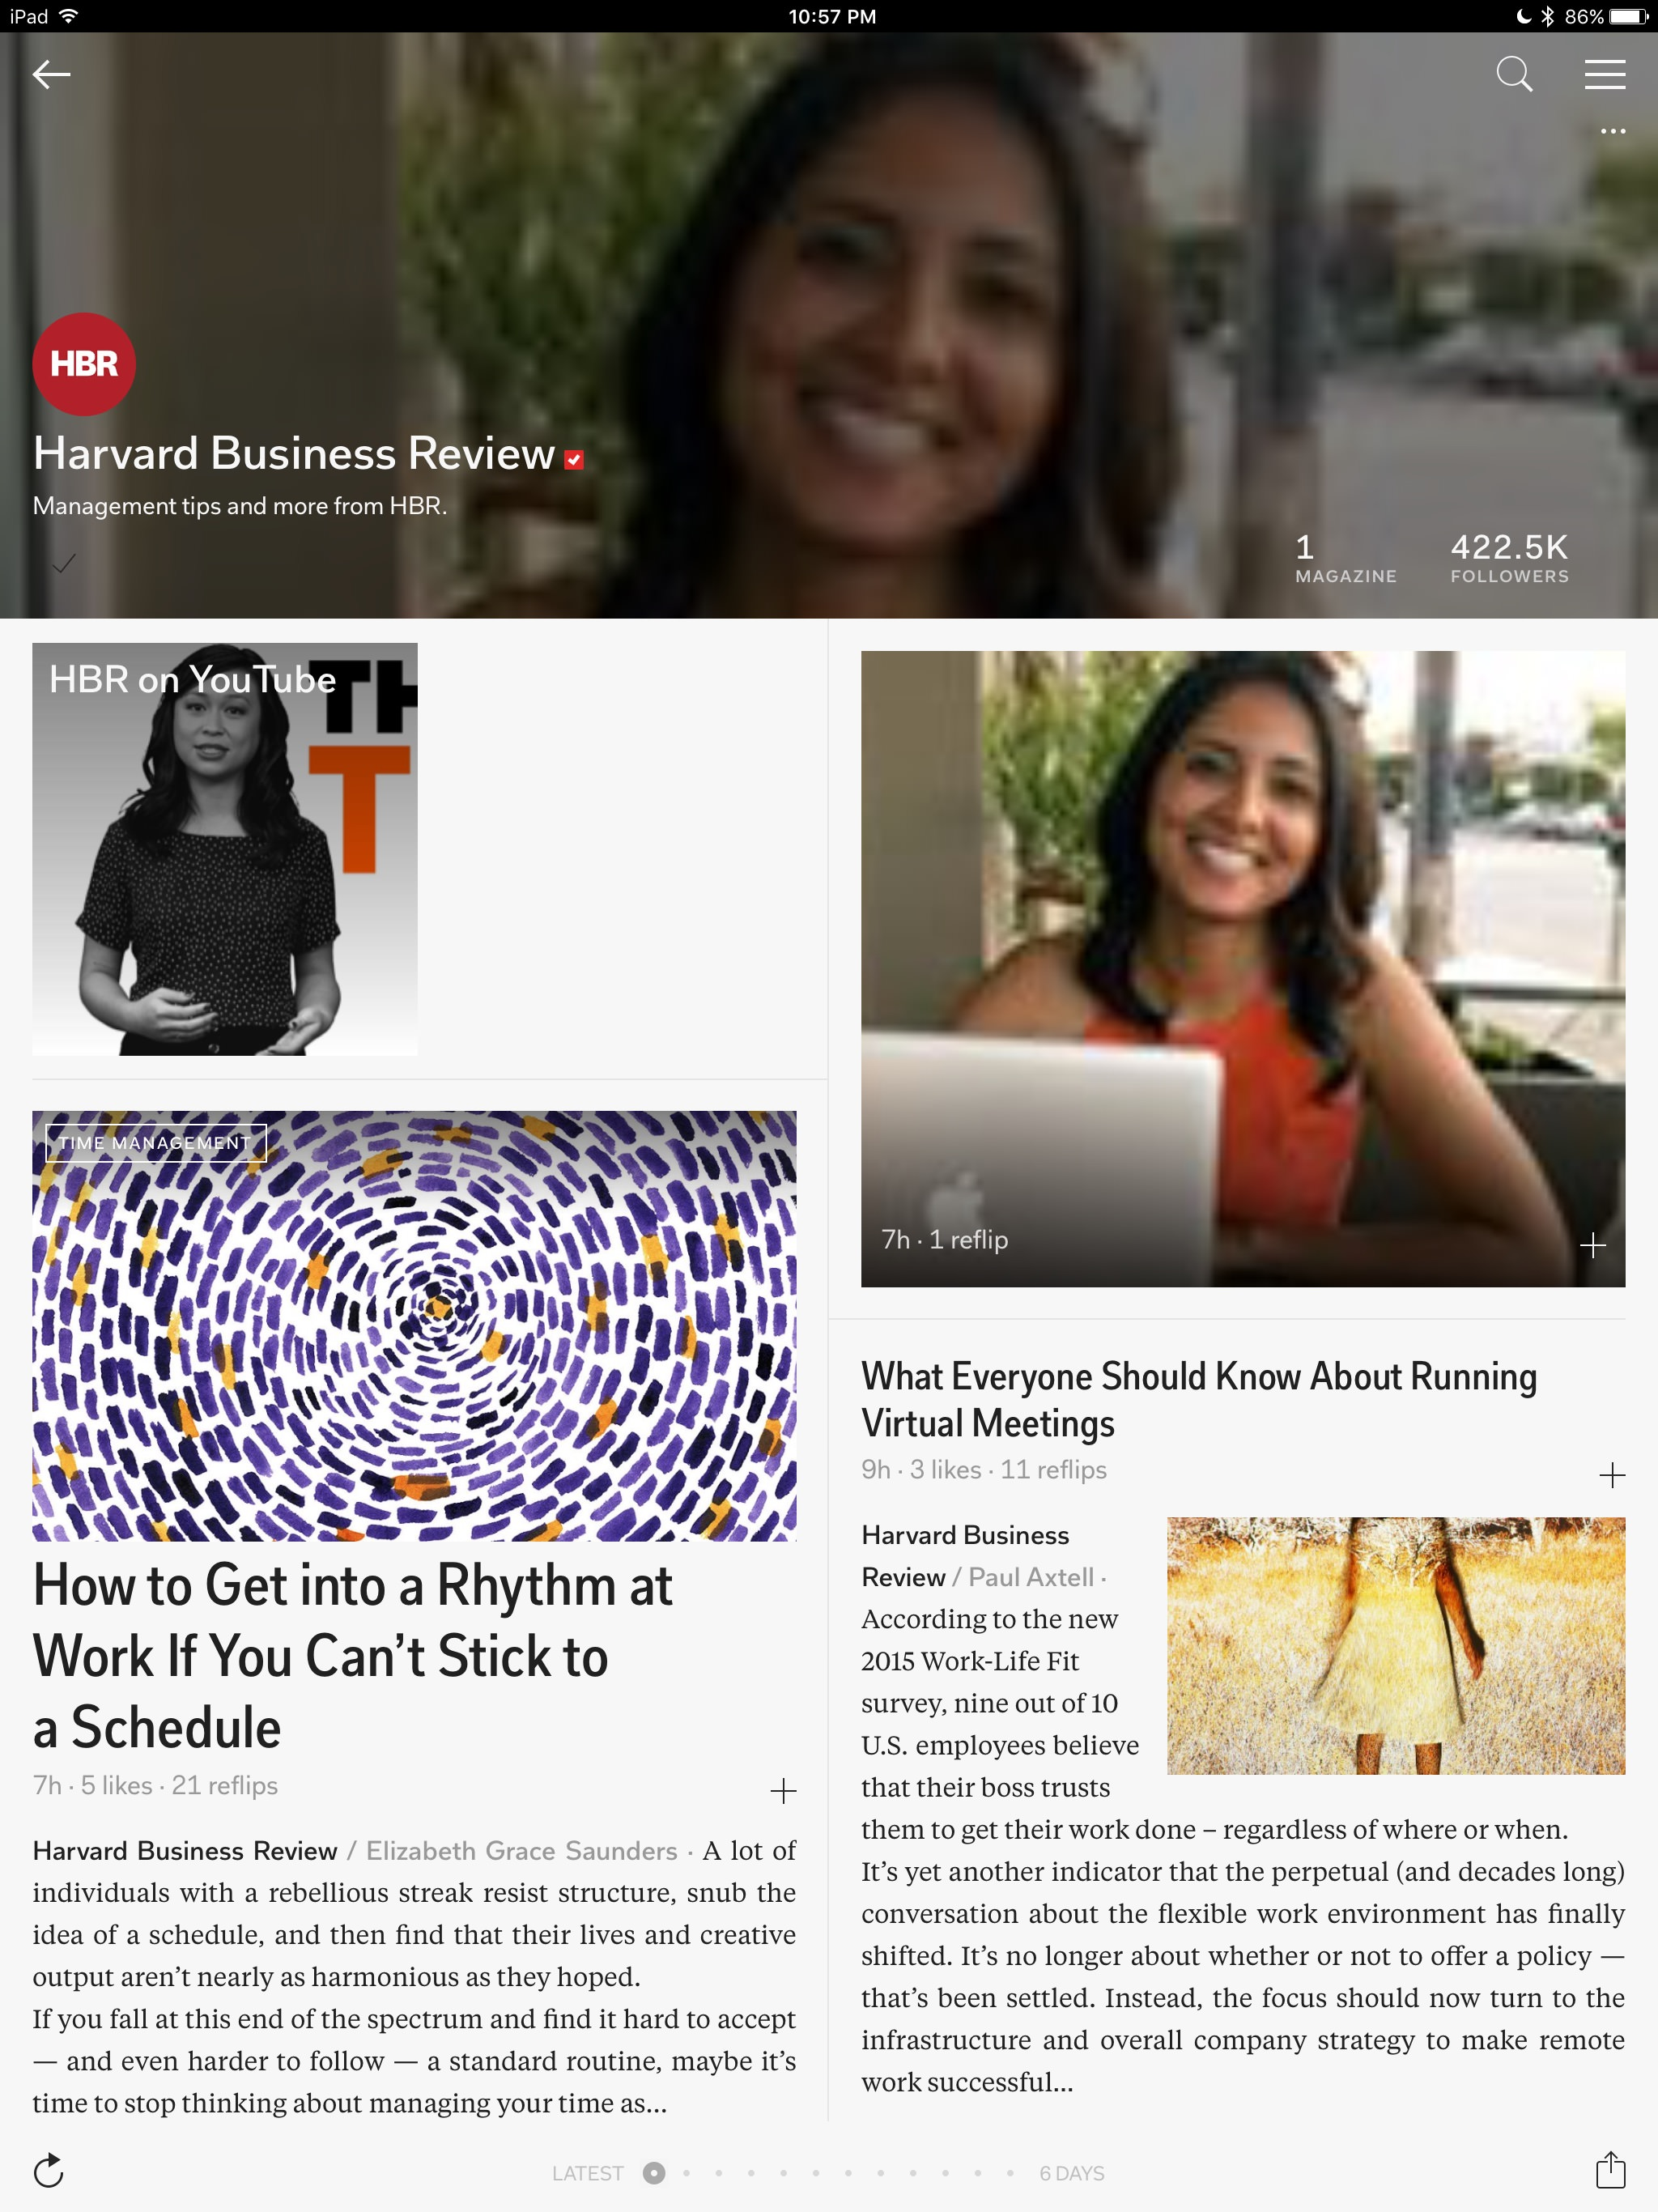 1b-Flipboard-Articles